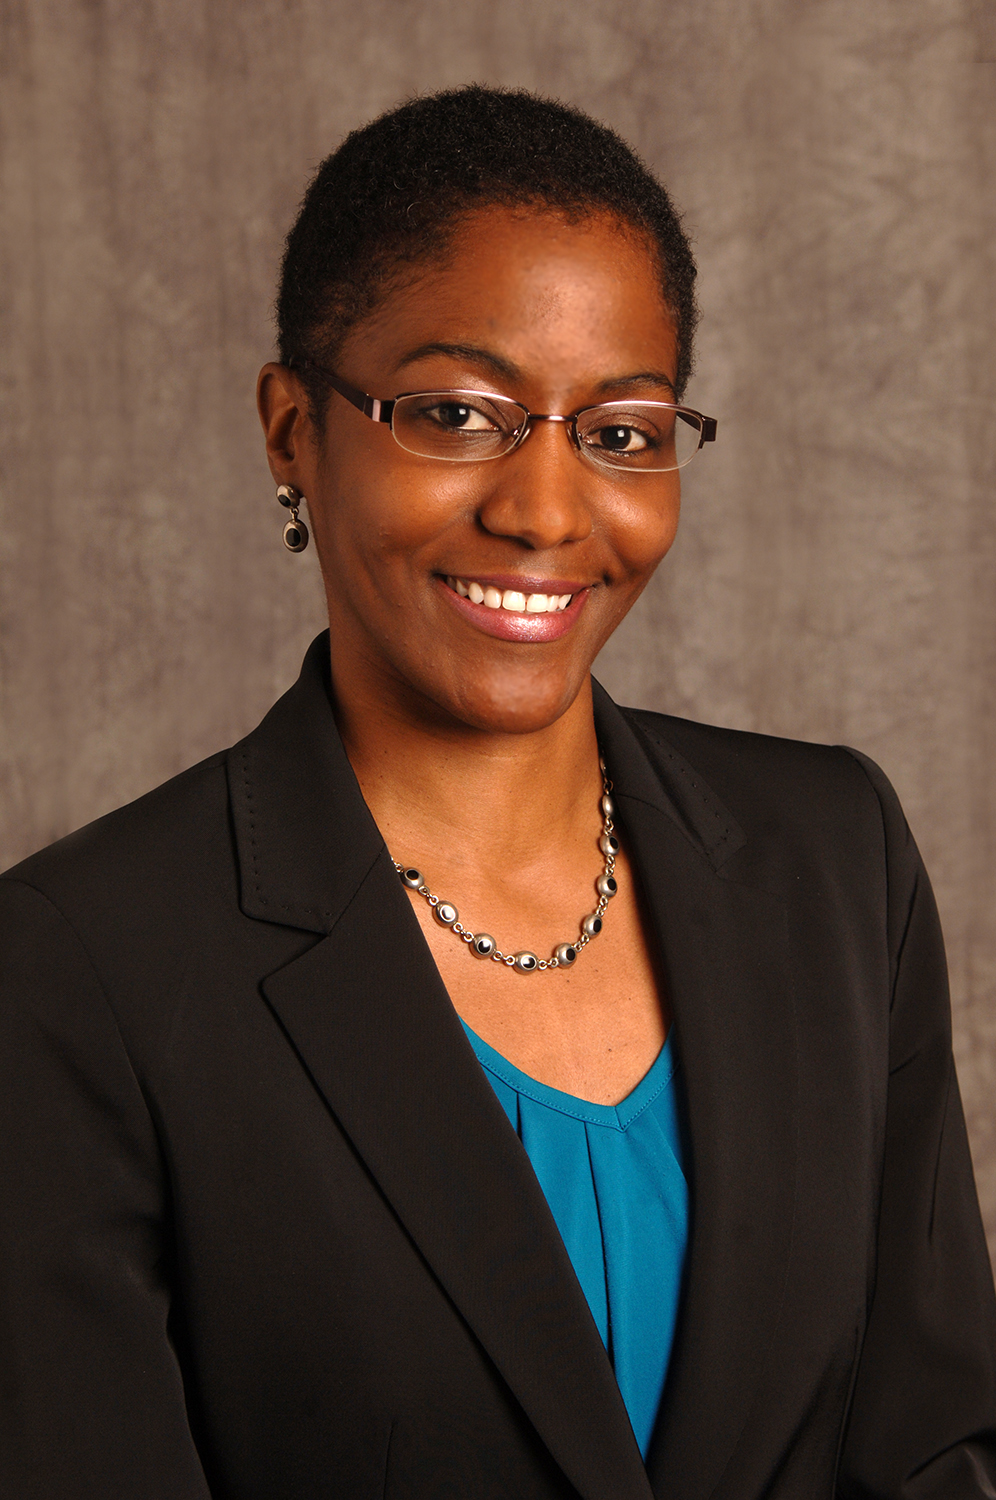 Shenell D. Evans, PhD - Licensed Clinical Psychologist